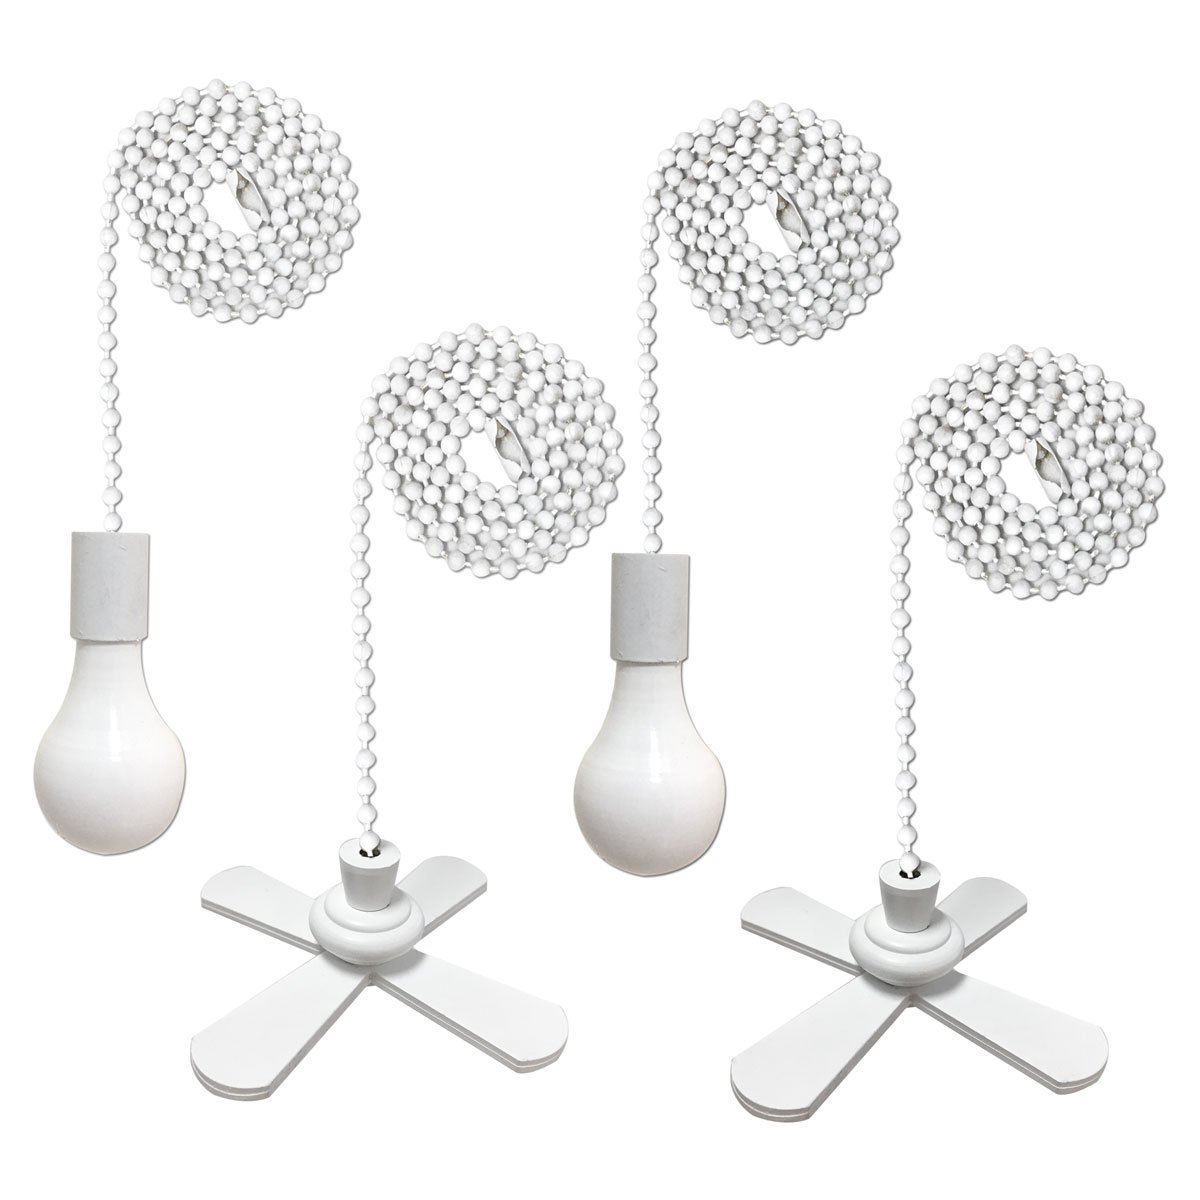 Royal Designs Fan and Light Bulb Shaped Pull Chain Set - White, Two Pair by Royal Designs, Inc